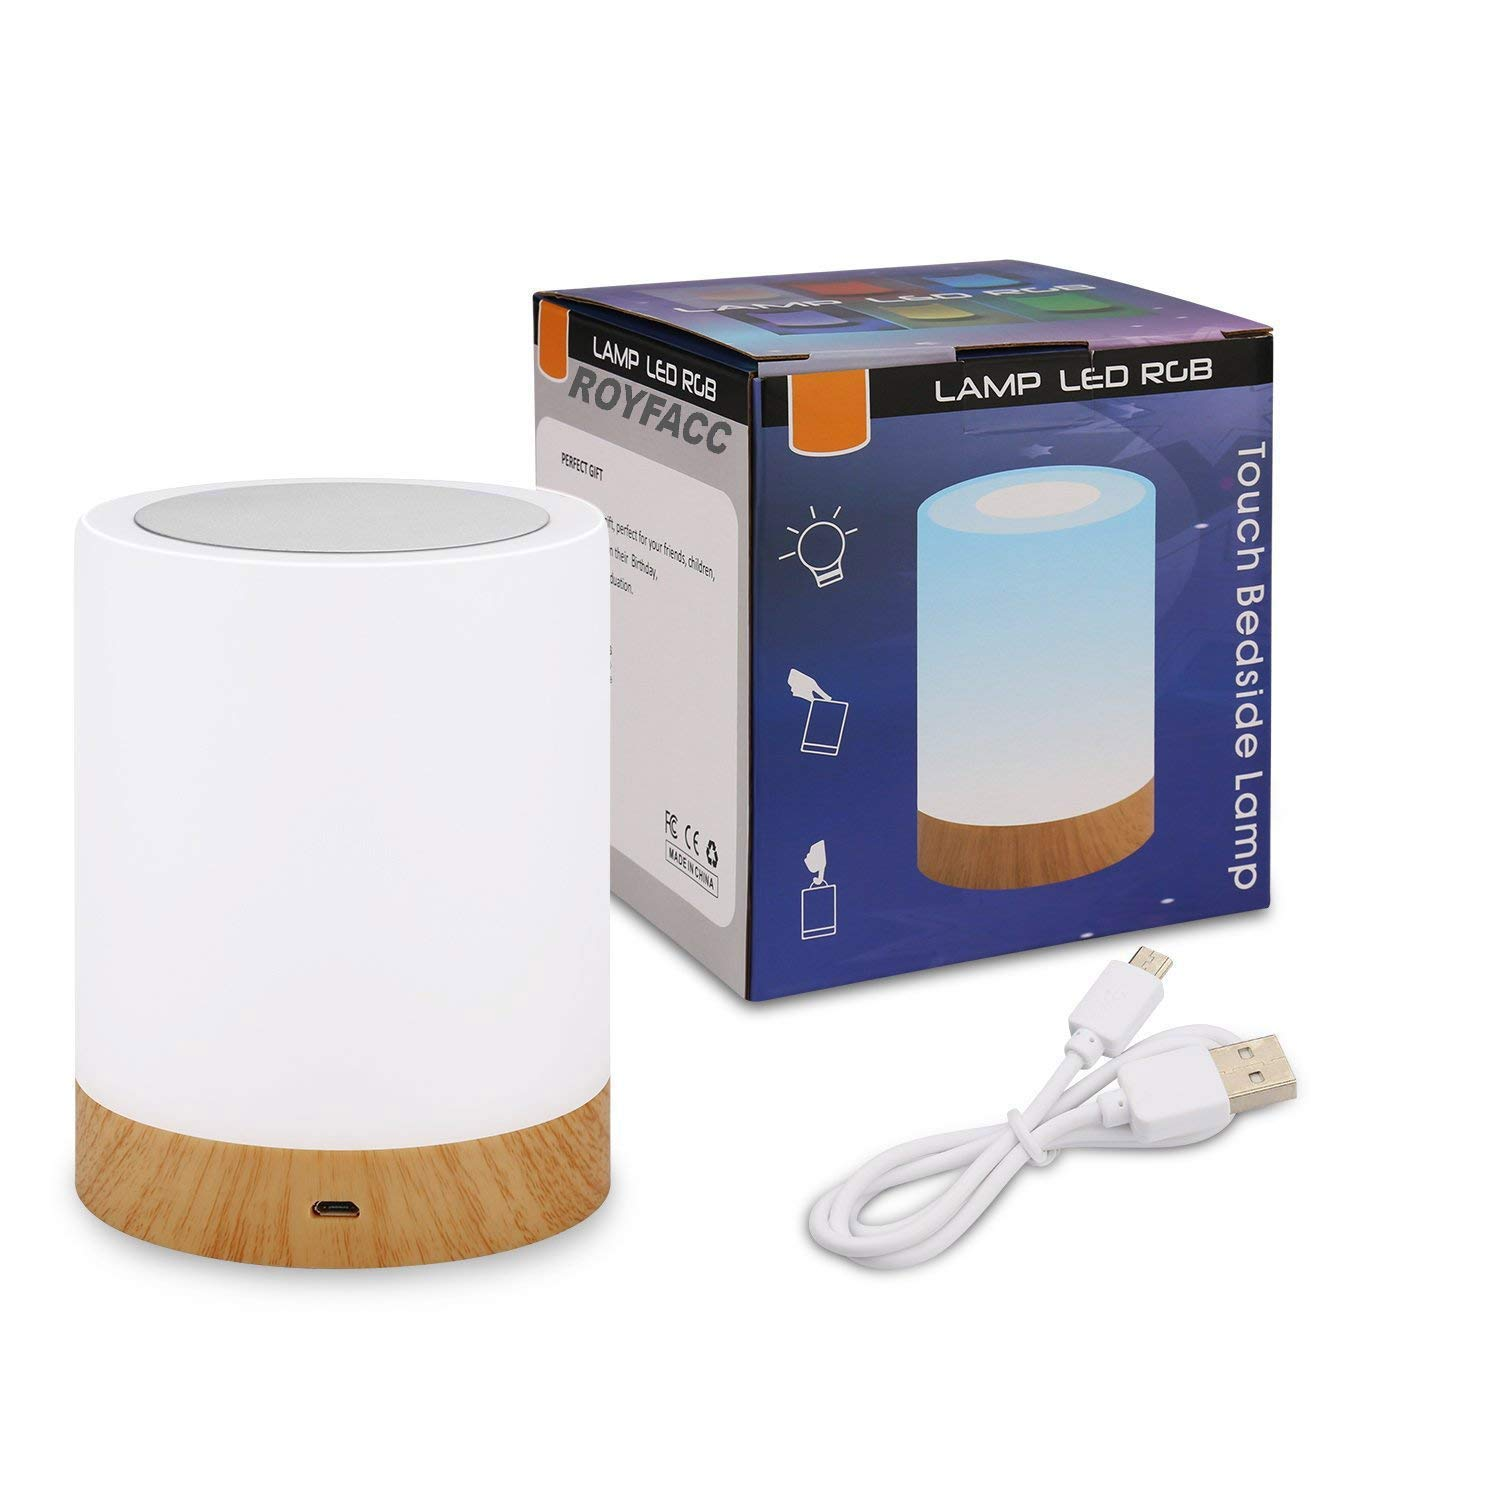 ROYFACC Night Light Touch Sensor Lamp Bedside Table Lamp for Kids Bedroom Rechargeable Dimmable Warm White Light + RGB Color Changing by ROYFACC (Image #7)